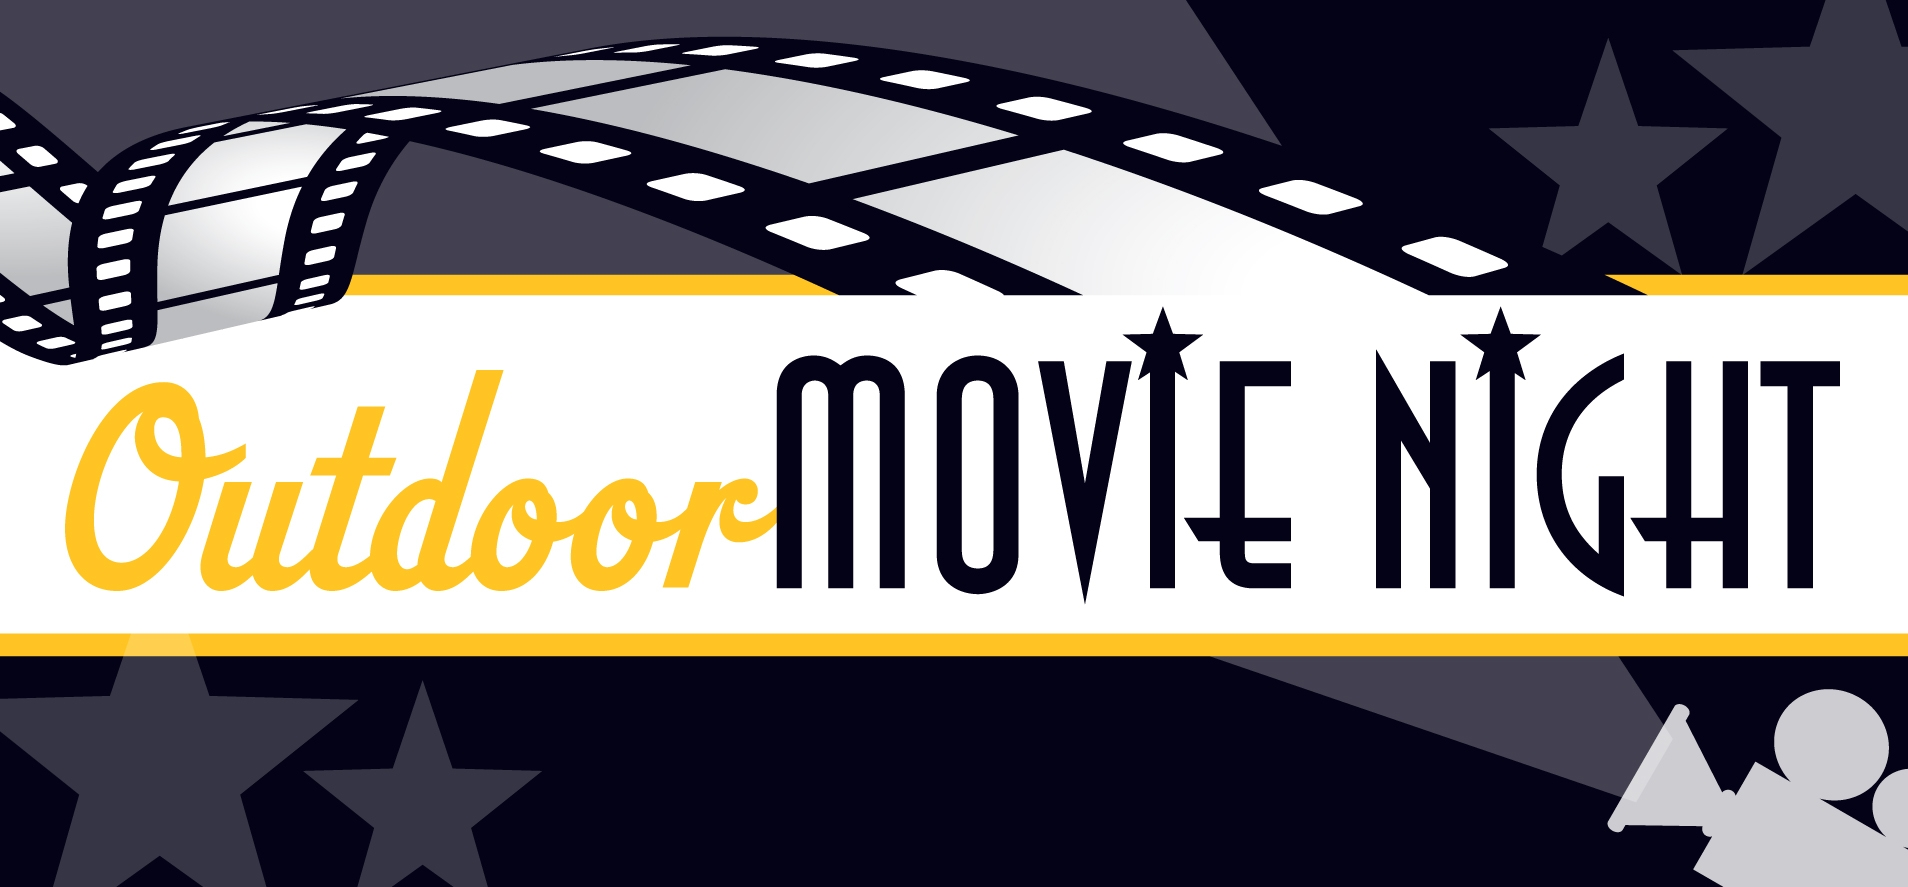 Night clipart outdoor movie night. Free cliparts download clip